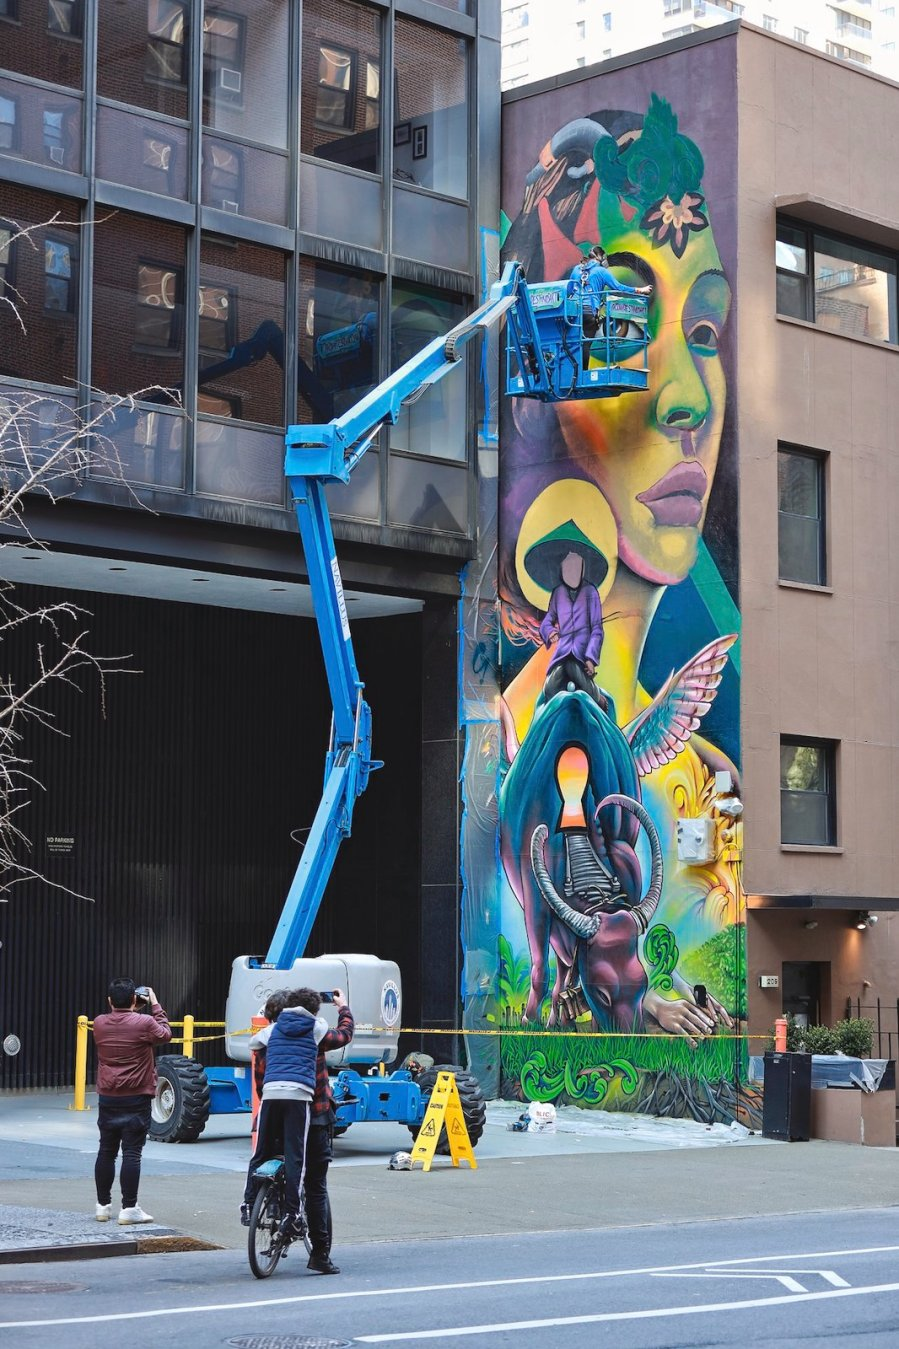 ILO-art-walk-100-street-art-manhattan-pc-just-a-spectator-2